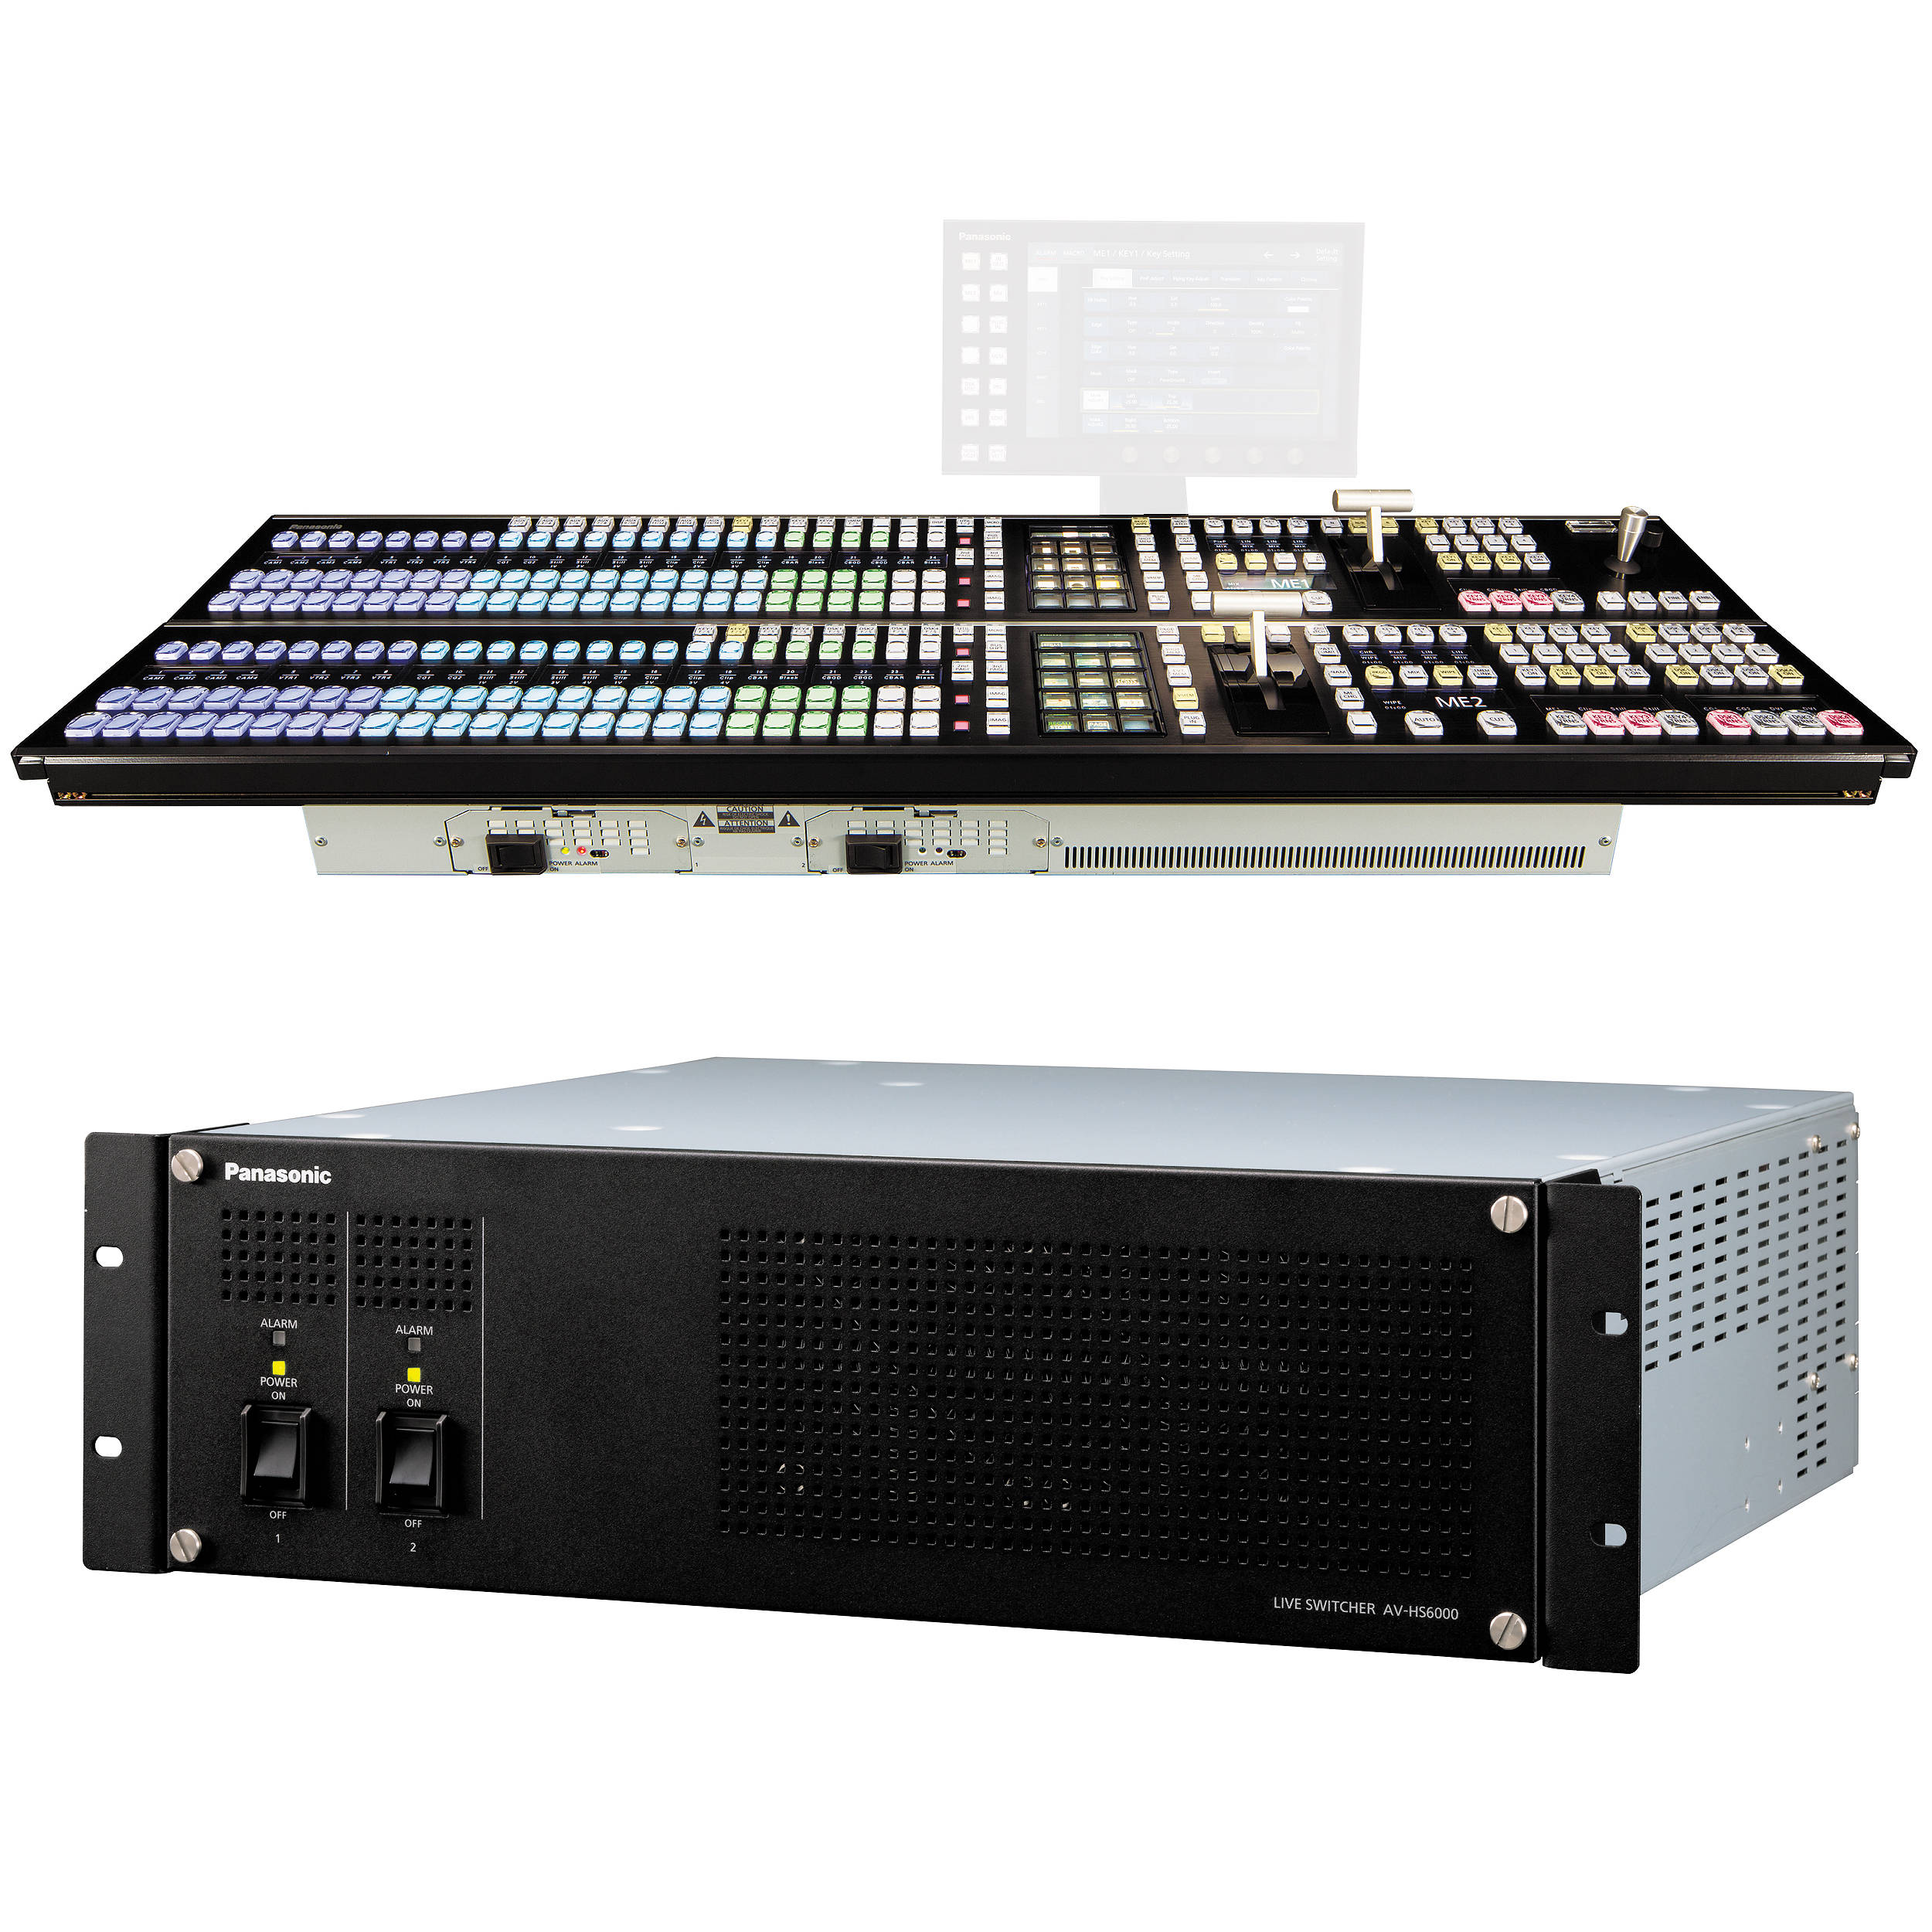 panasonic av hs6000 2 m e live switcher main frame av hs6000u2ps